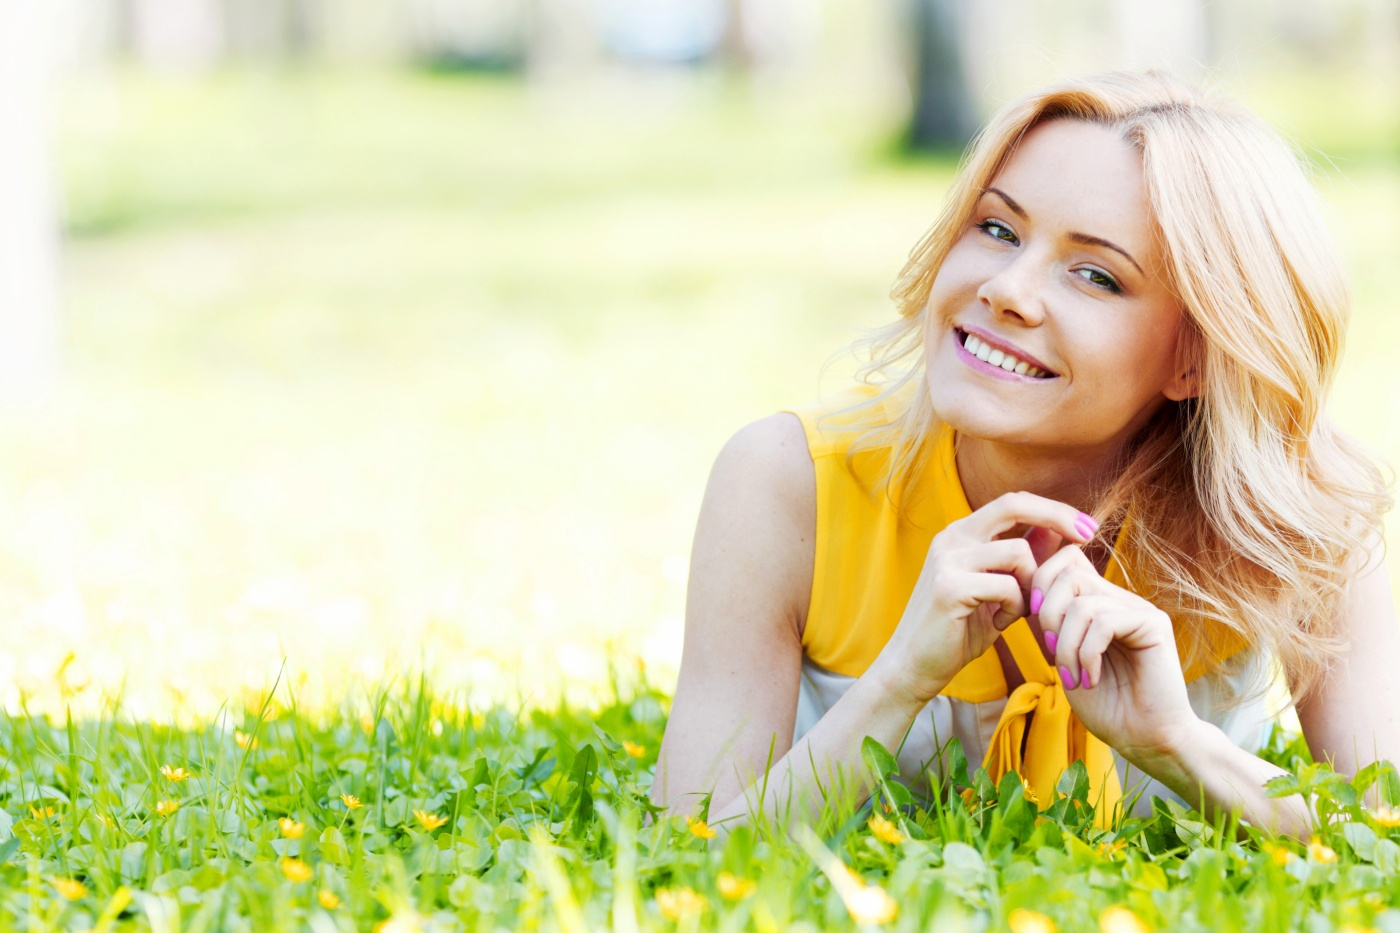 Blonde woman laying on the grass and smiling